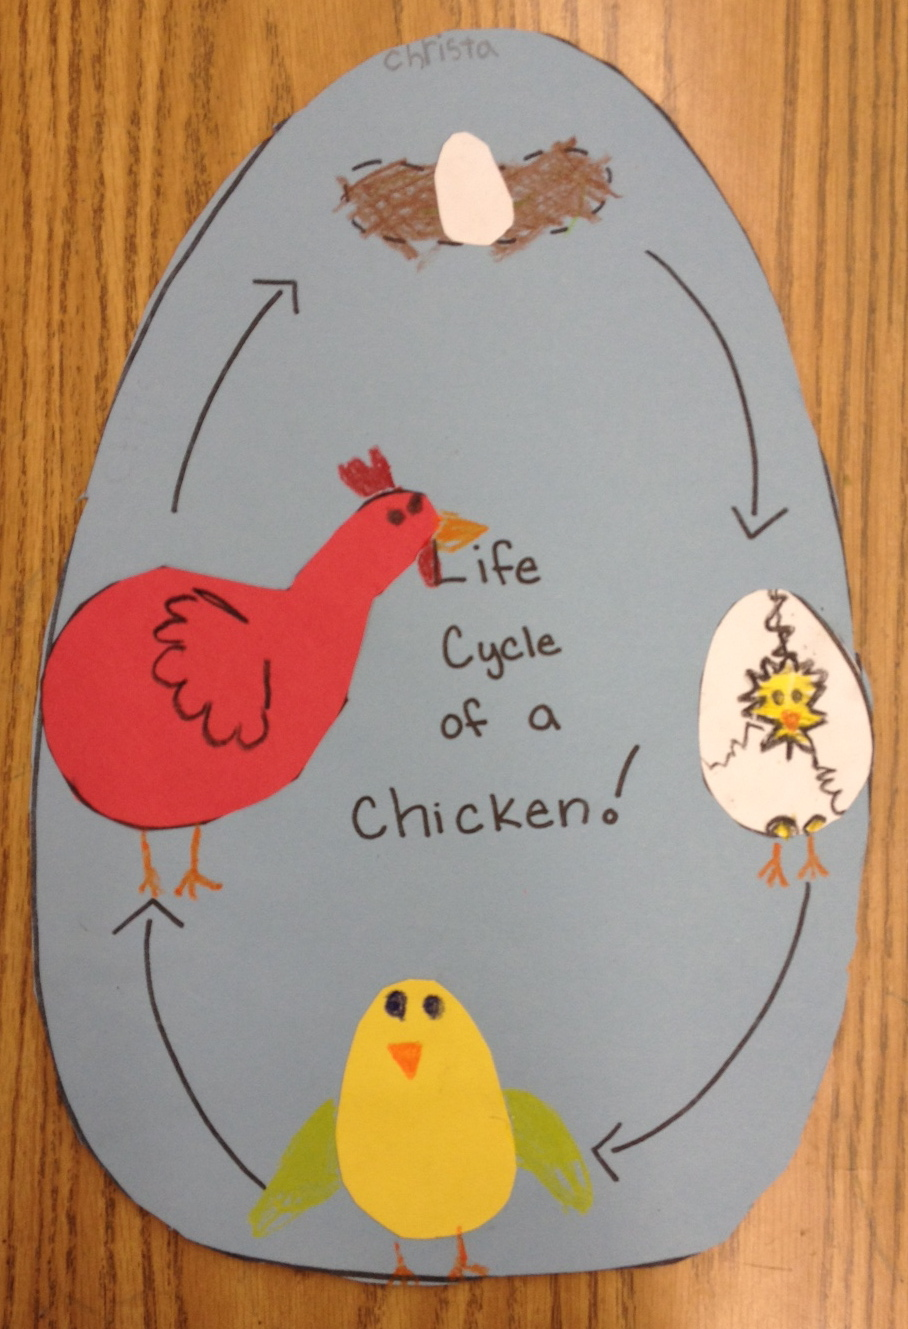 here is the finished product of the life cycle of a chicken that we